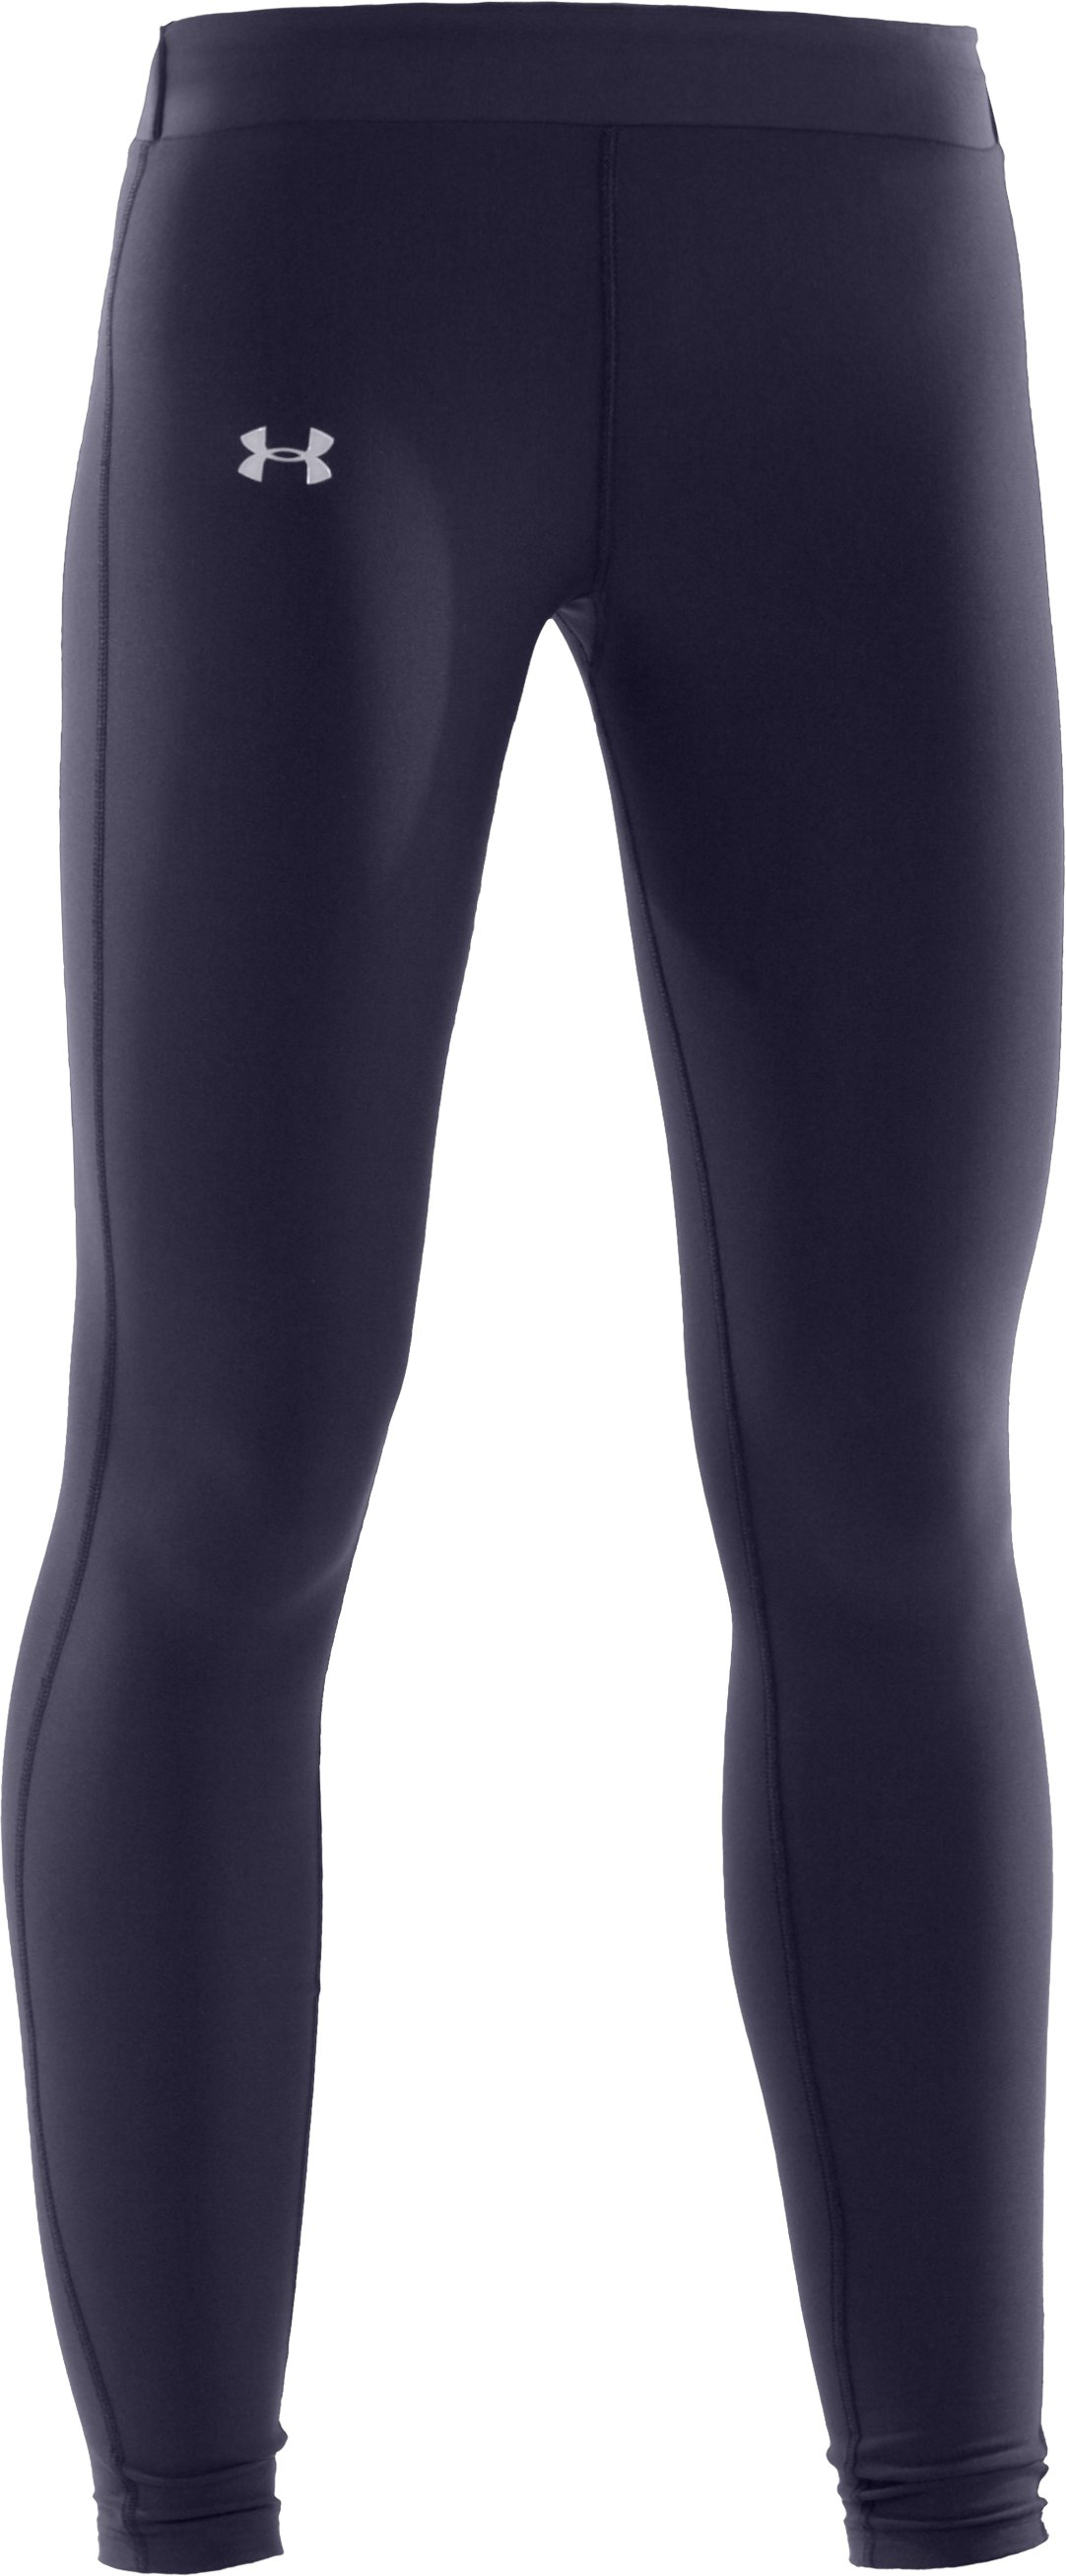 Women's UA ColdGear® Compression Leggings, Midnight Navy, undefined